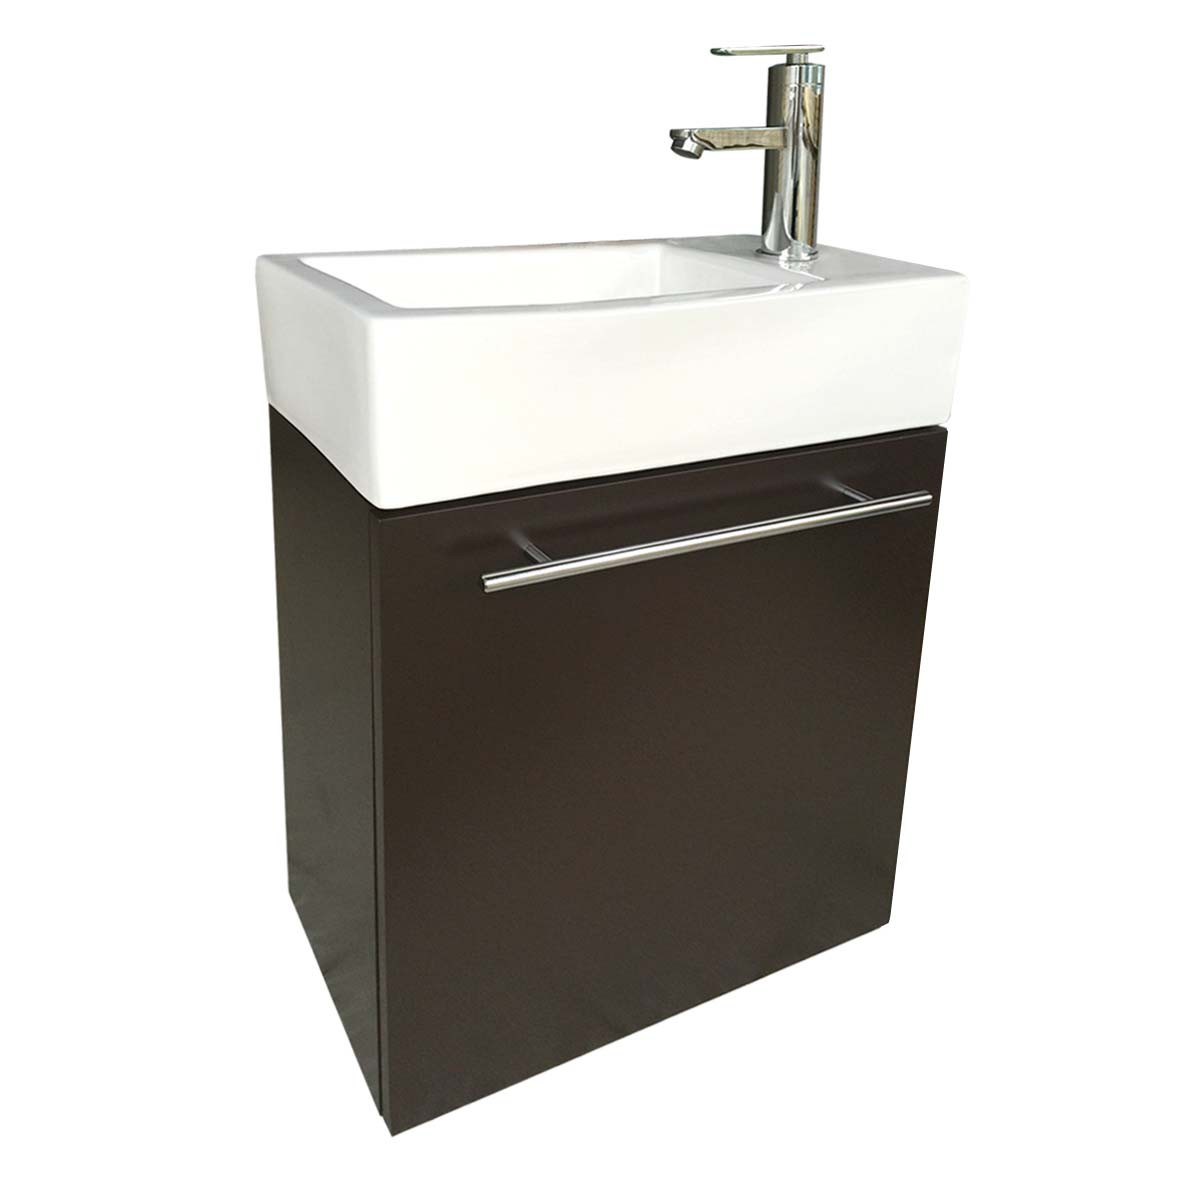 Small wall mounted bathroom sinks - Small Wall Mount Bathroom Cabinet Vanity Square Vessel Sink